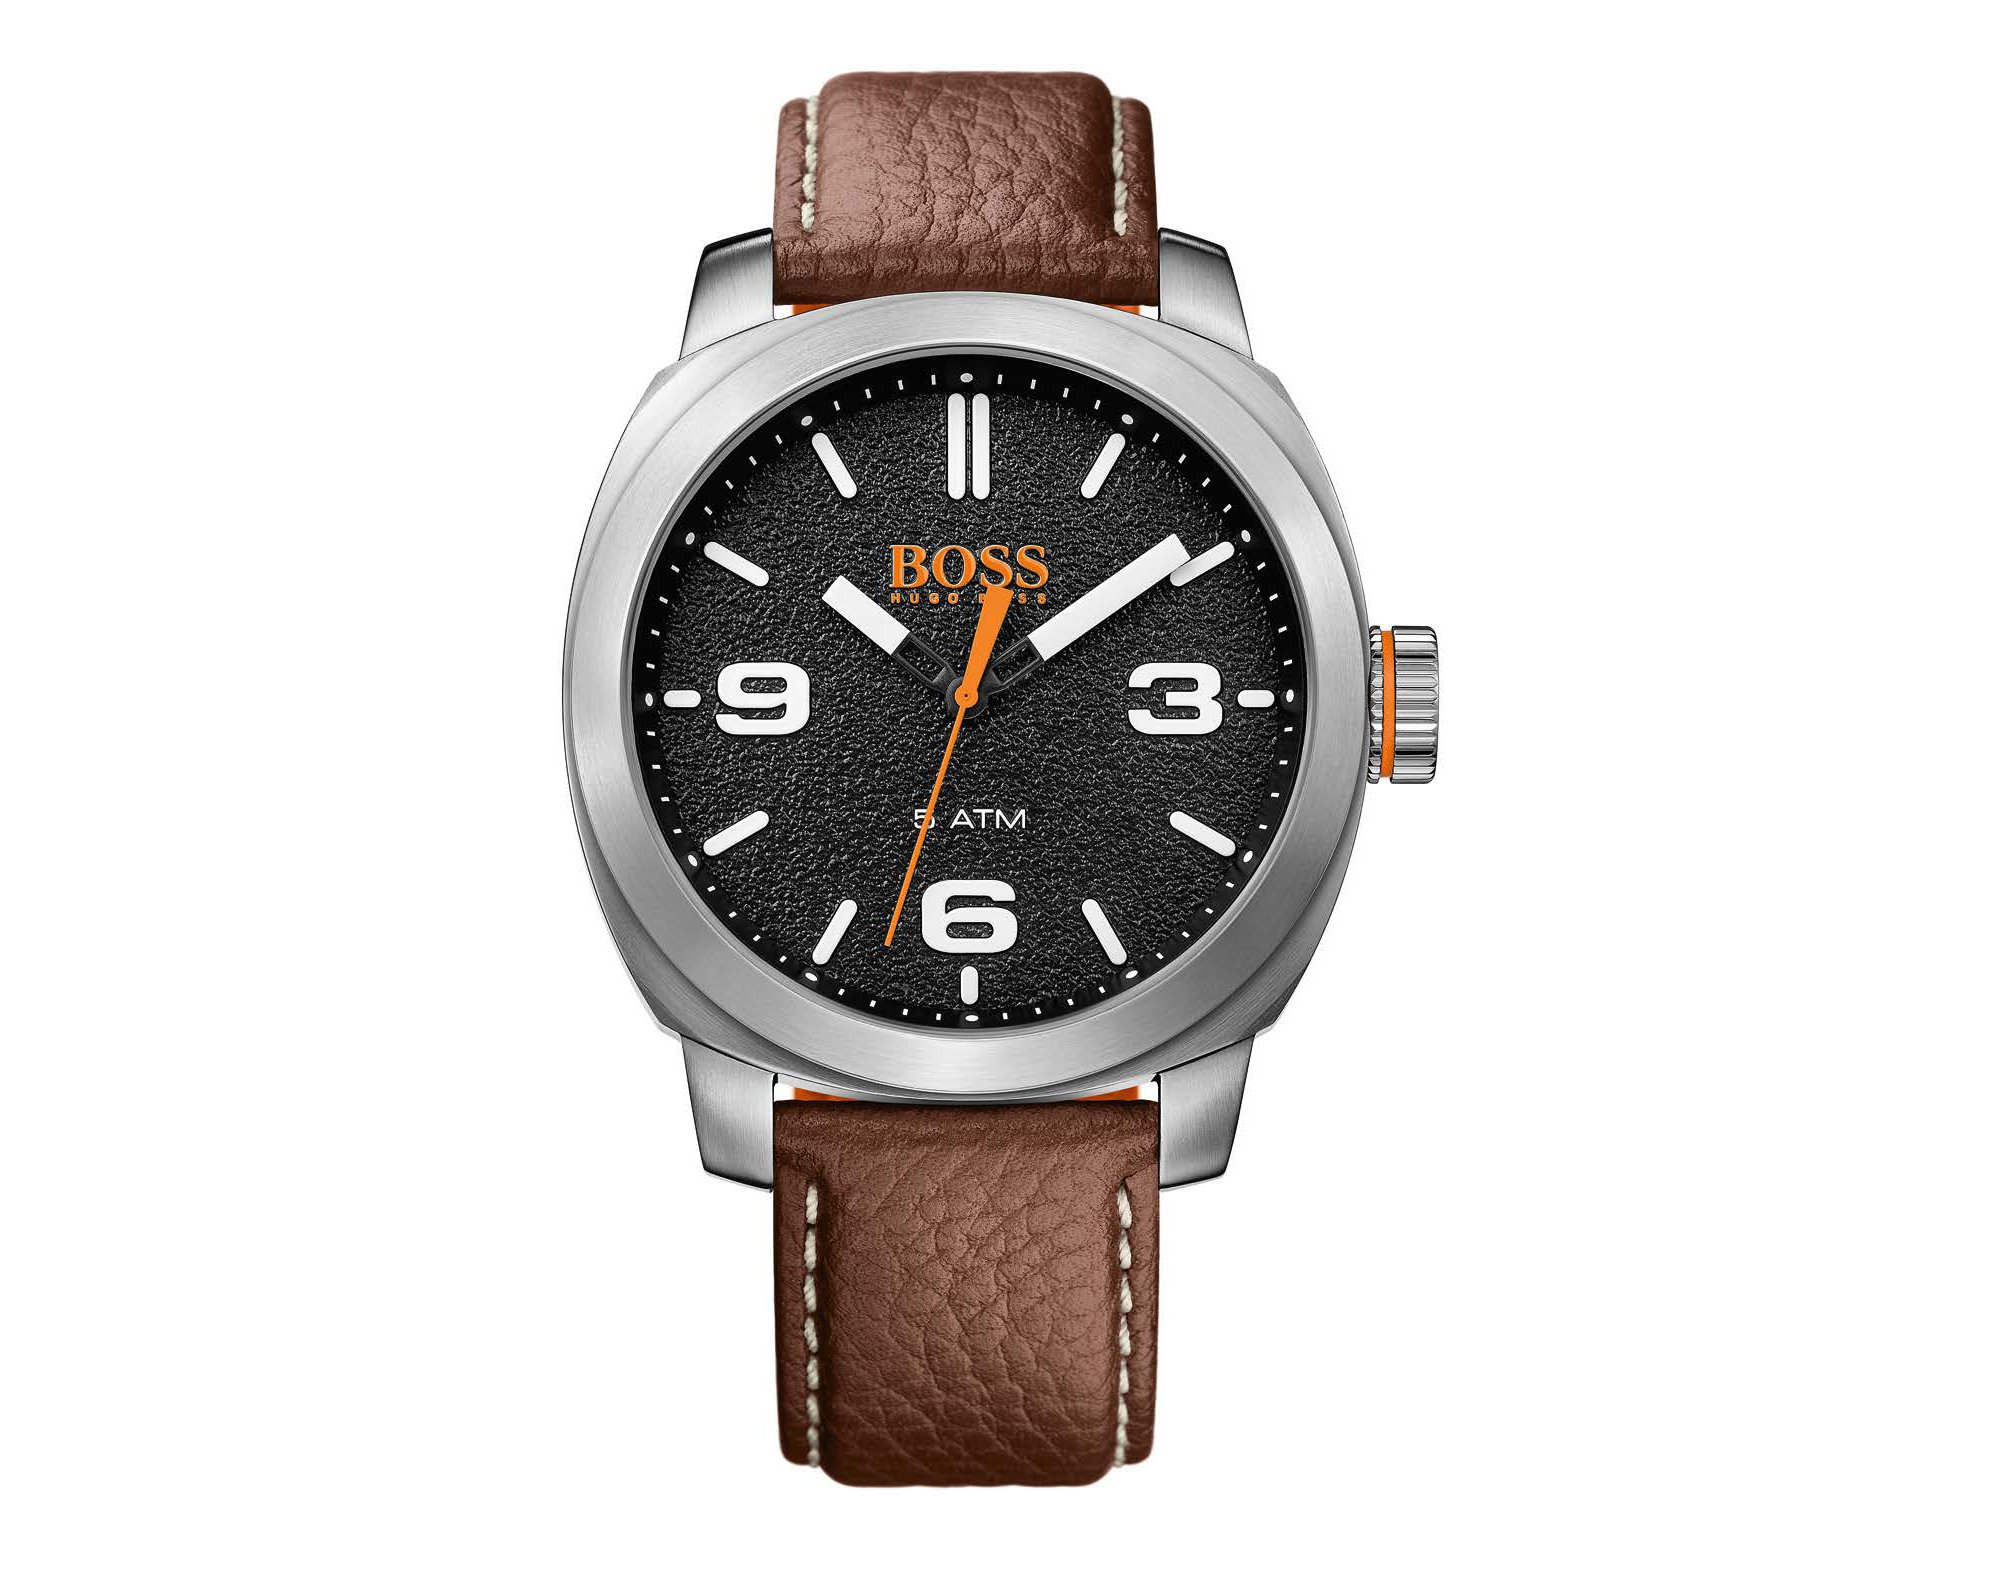 Textured black dial watch with grained leather strap, Brown